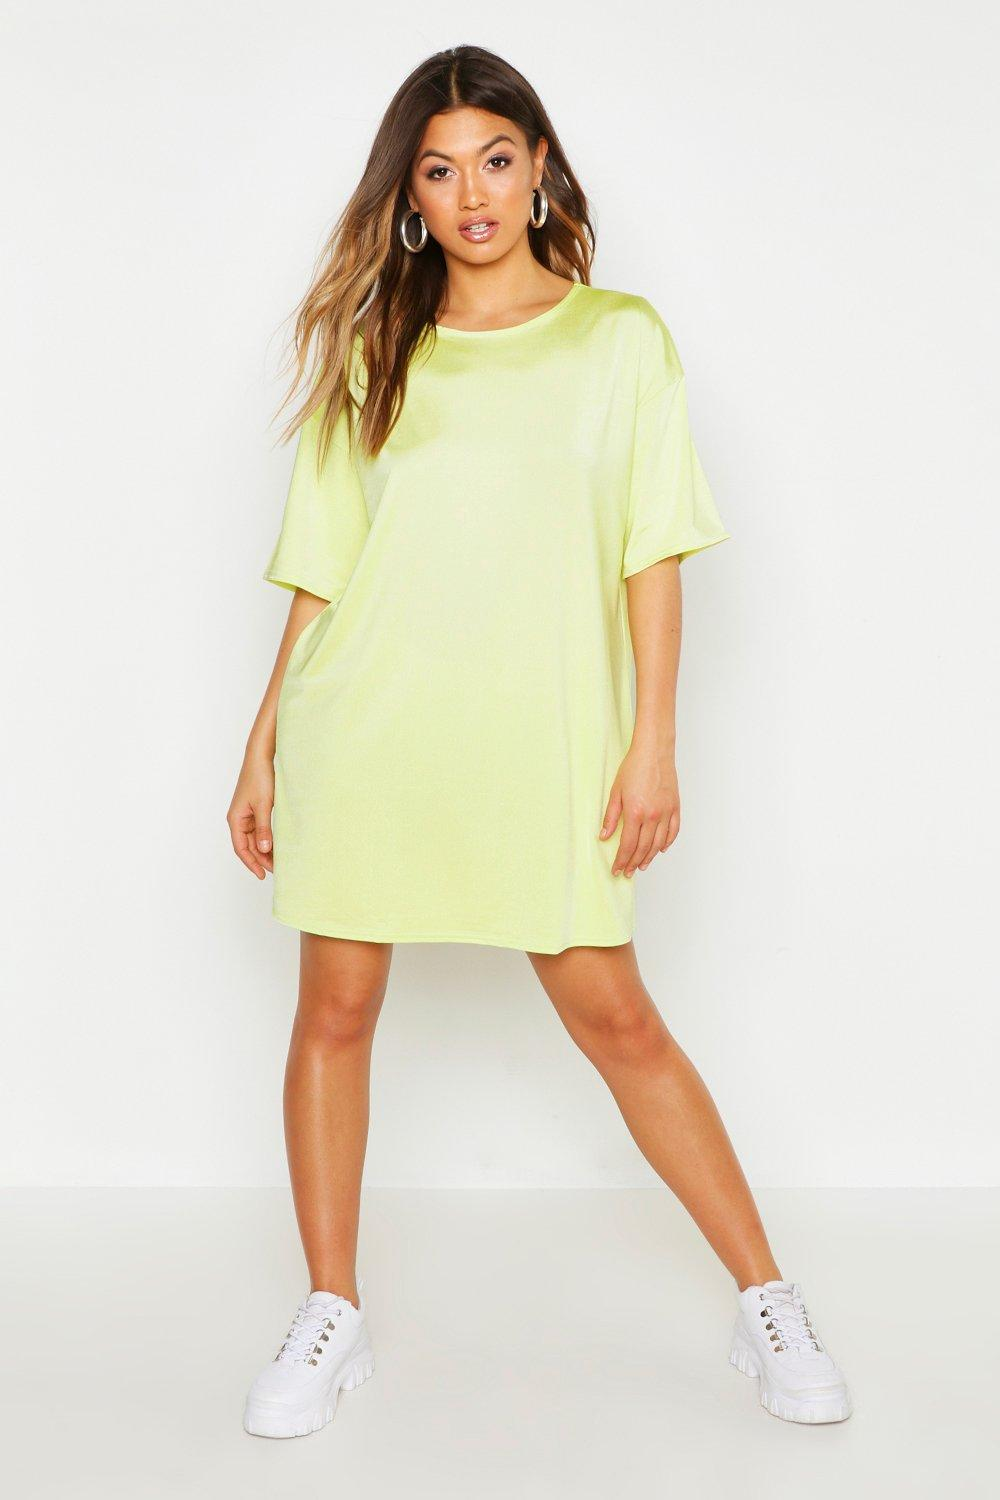 Womens Slinky Oversized T-Shirt Dress - lime - 34, Lime - Boohoo.com